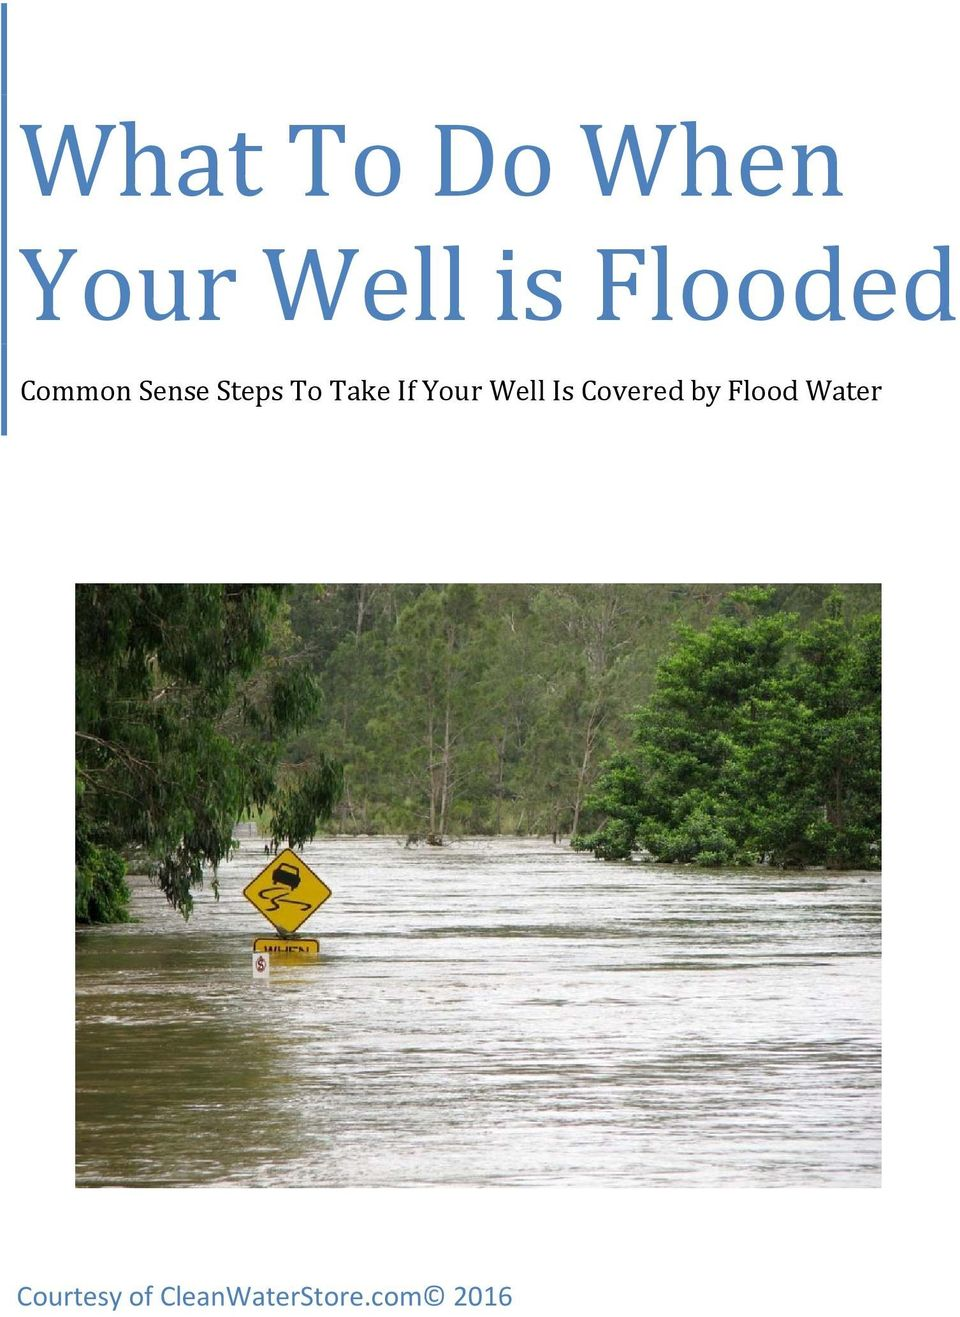 If Your Well Is Covered by Flood